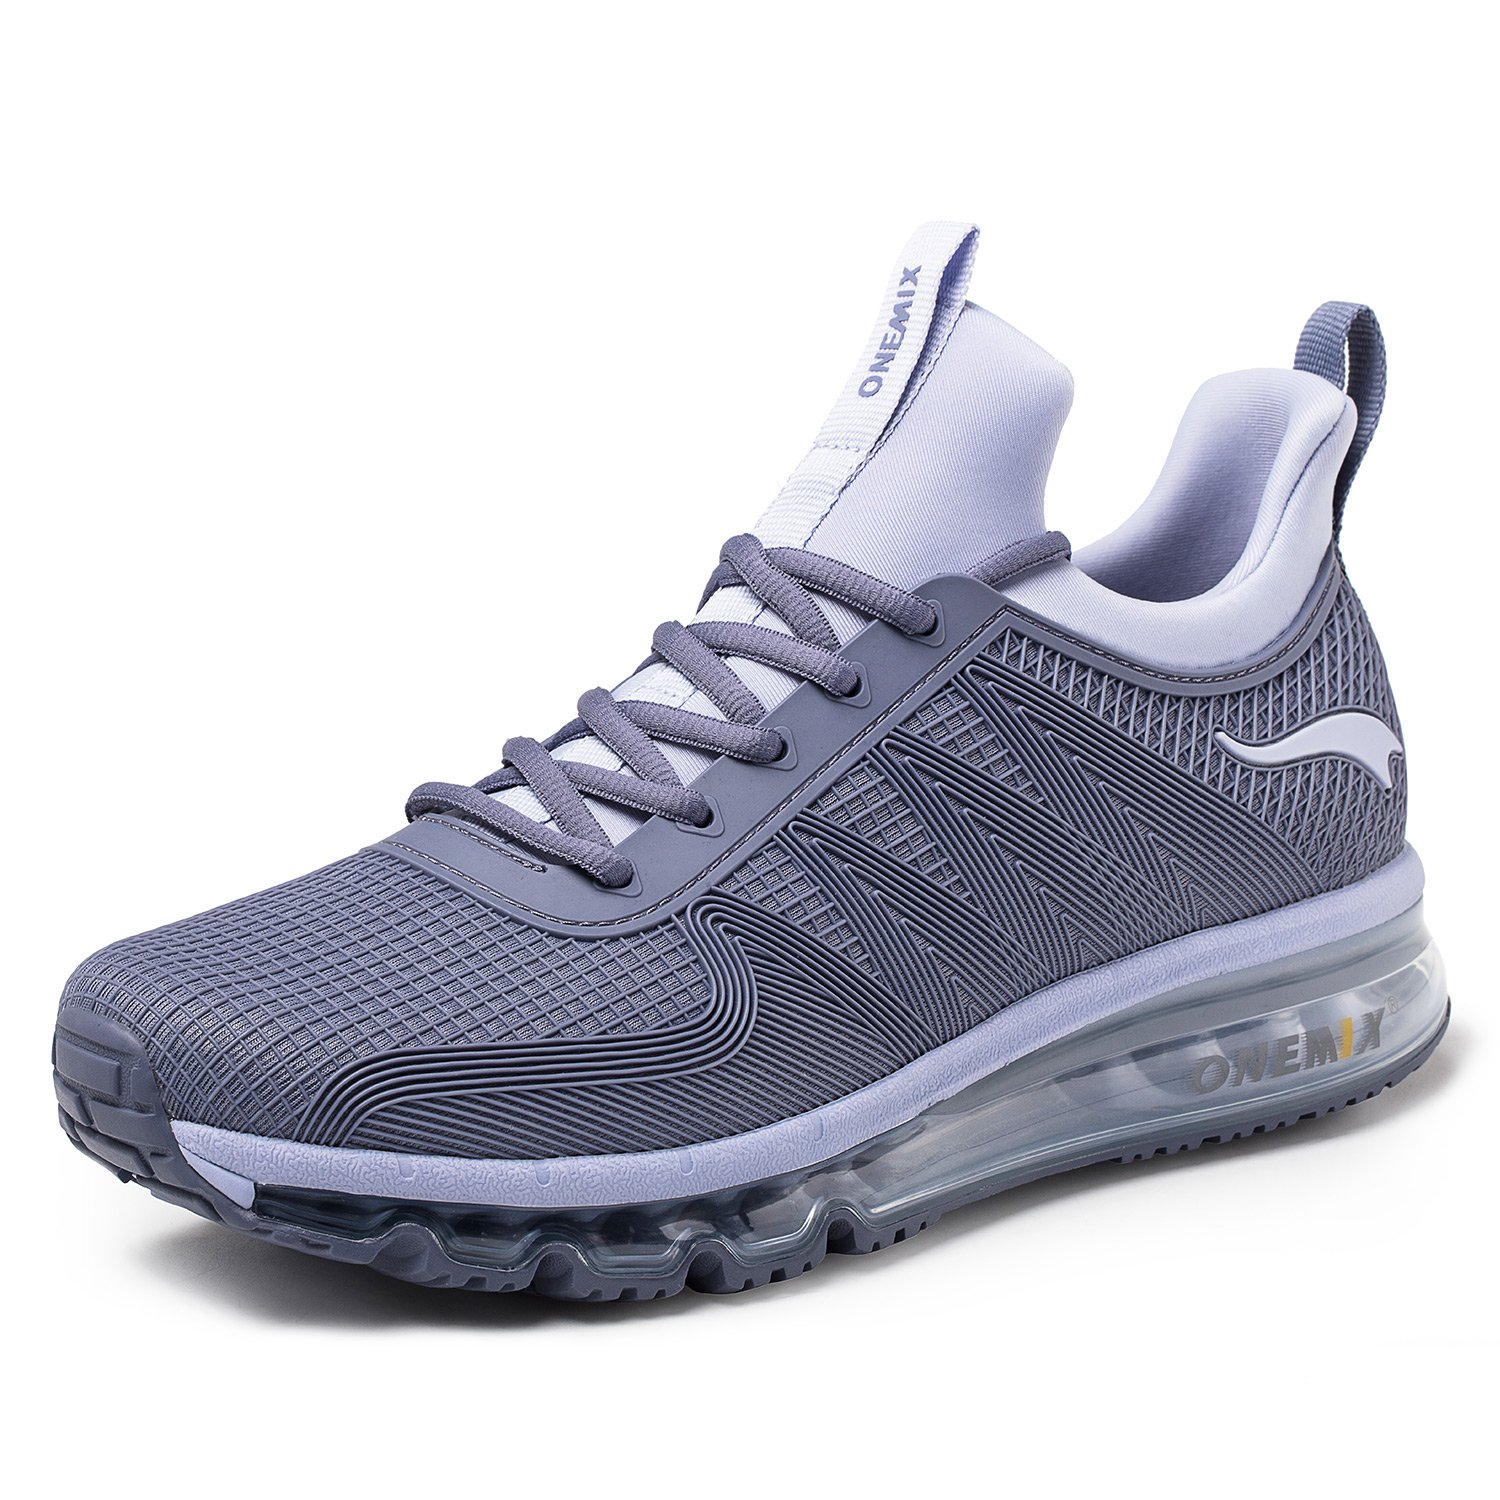 ONEMIX Air Cushion Men's Running Shoes for Outdoor